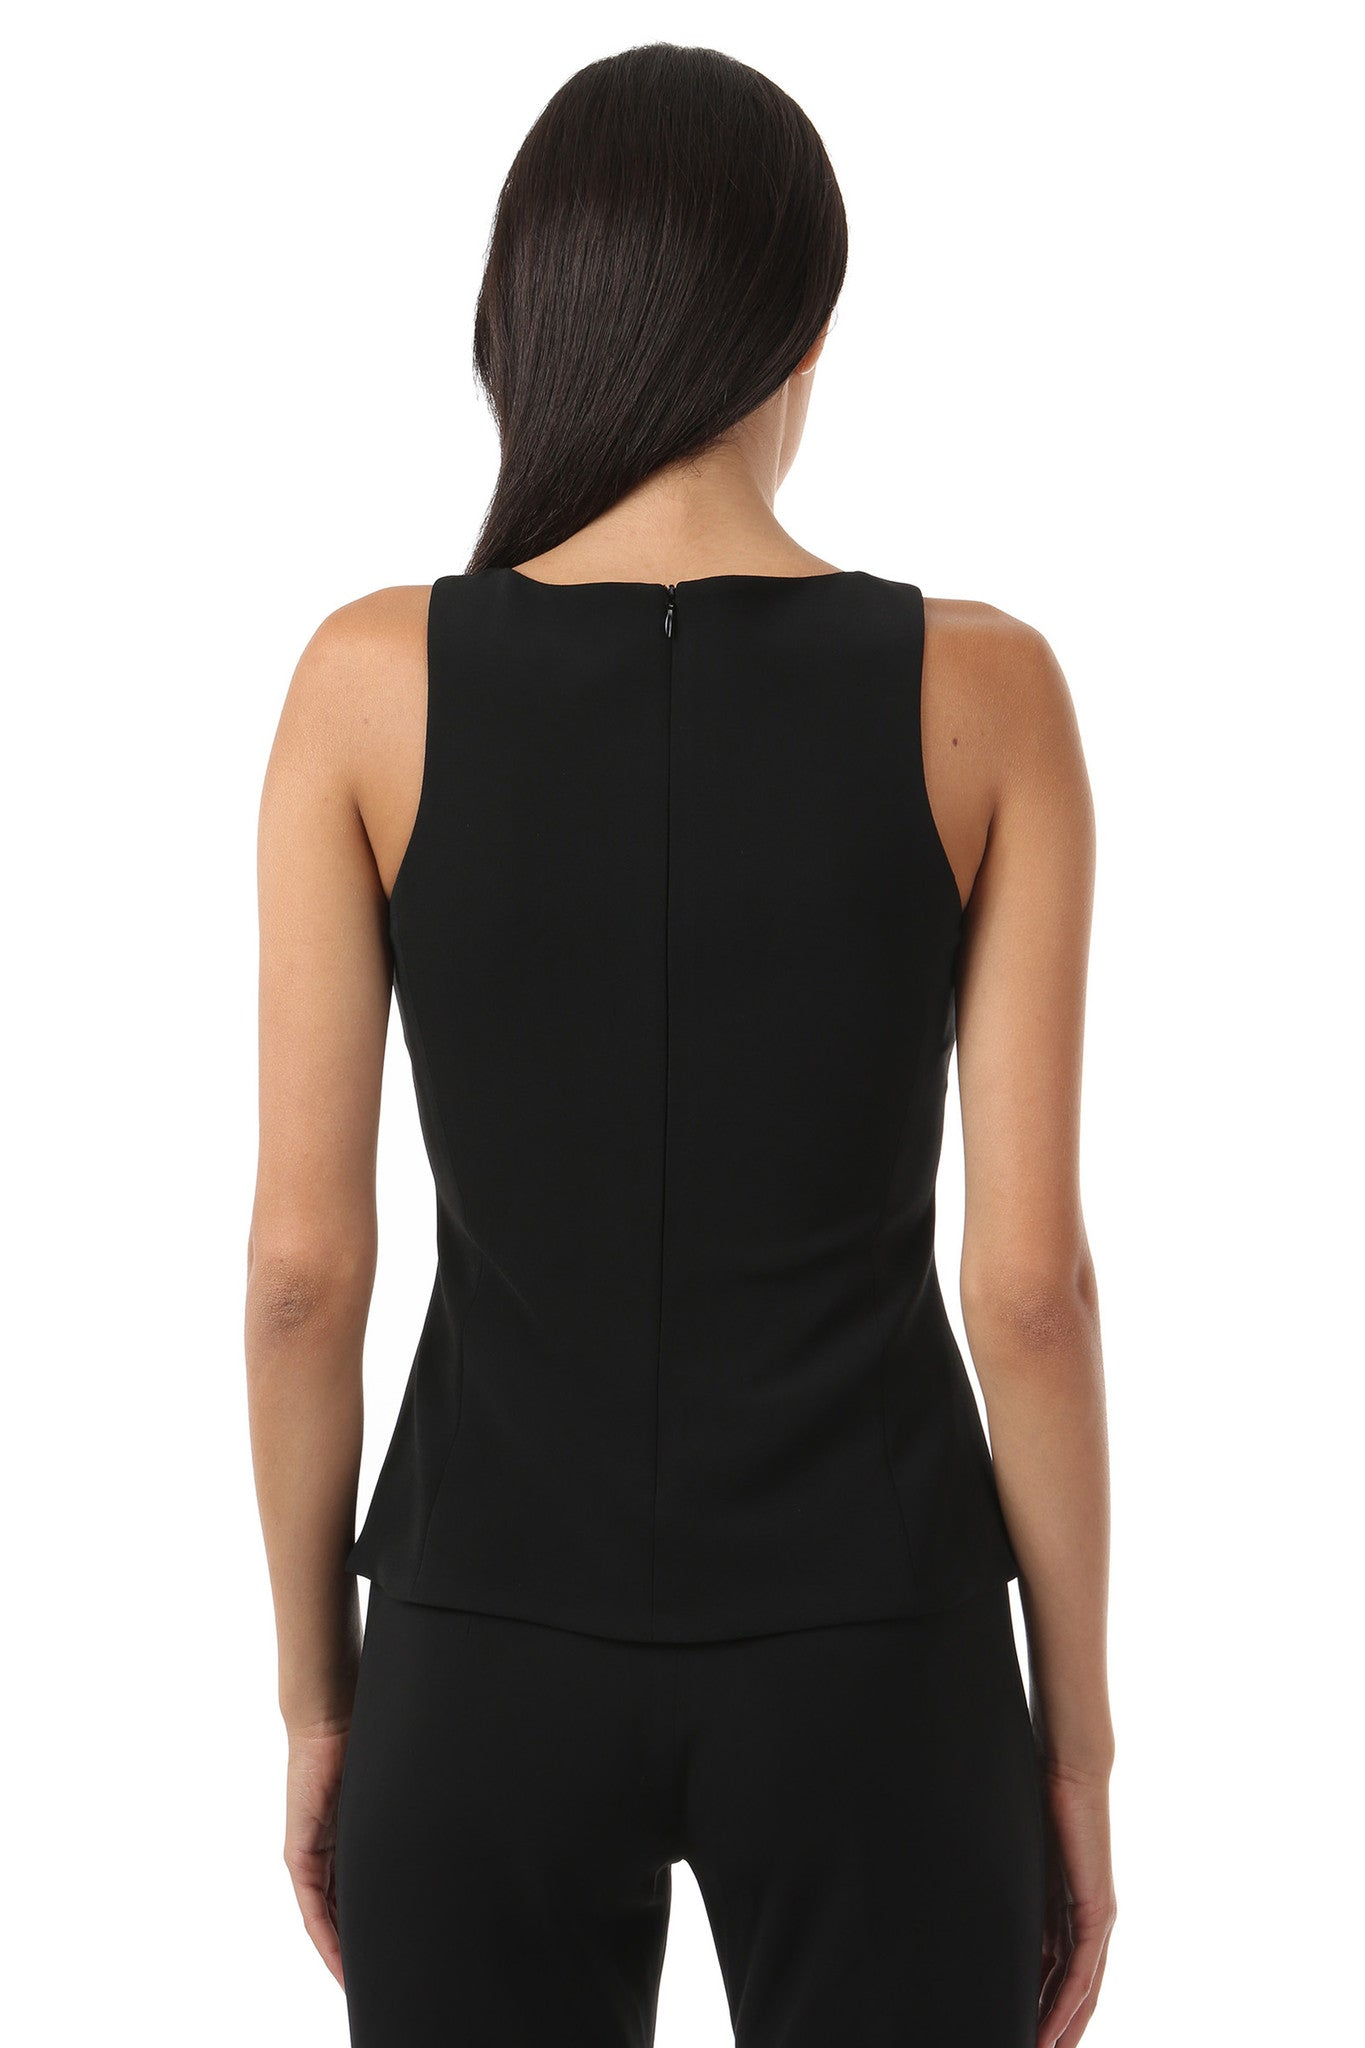 Jay Godfrey Black Peplum Top - Front View